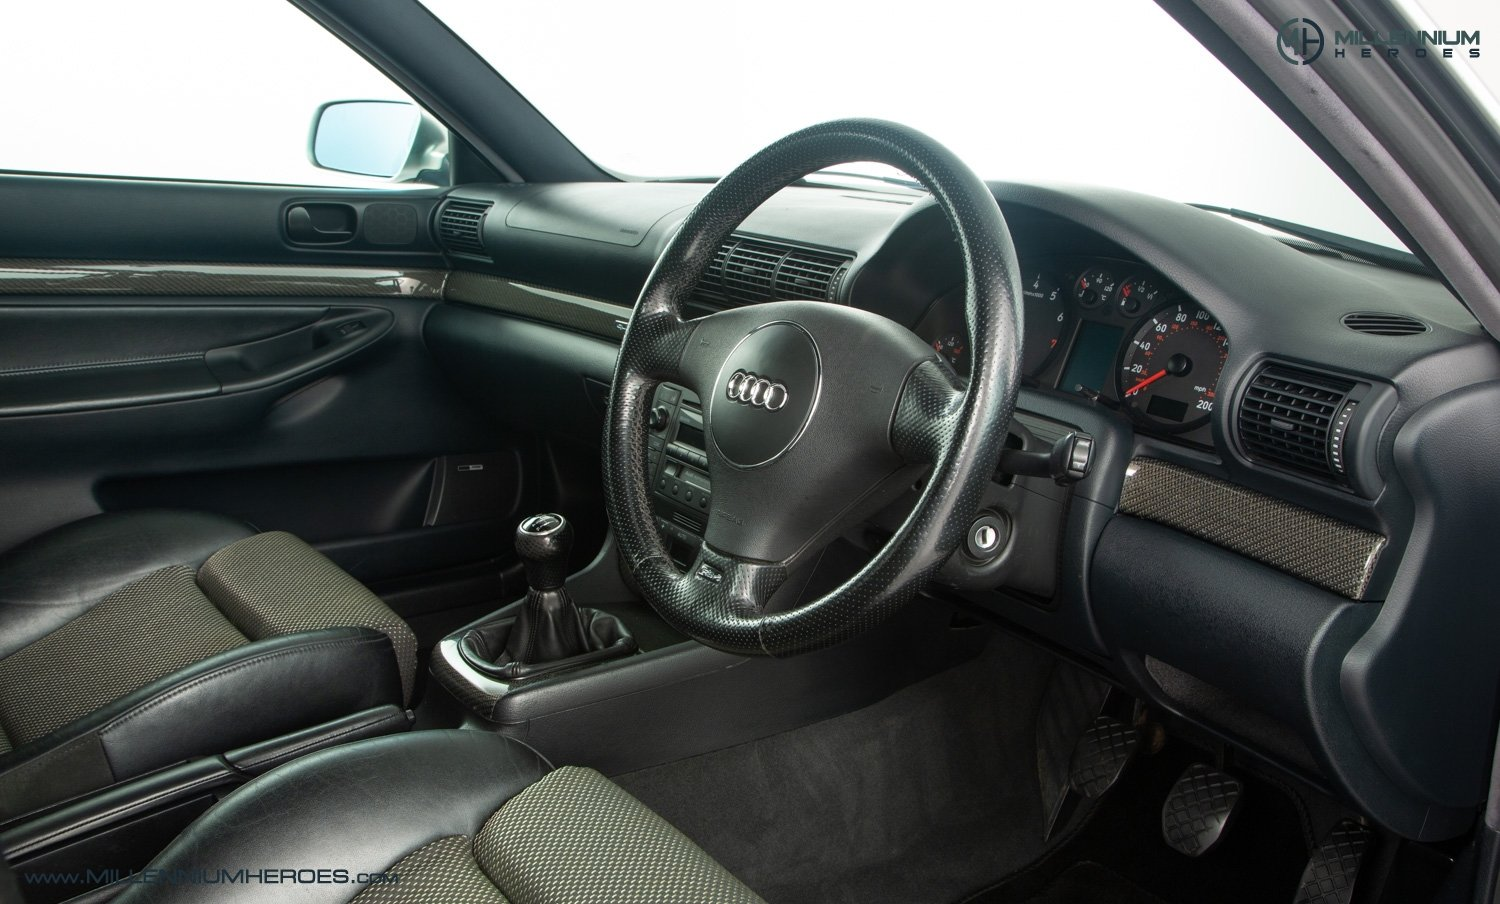 2001 AUDI B5 RS4 AVANT // 95K MILES // AVUS SILVER For Sale (picture 13 of 28)